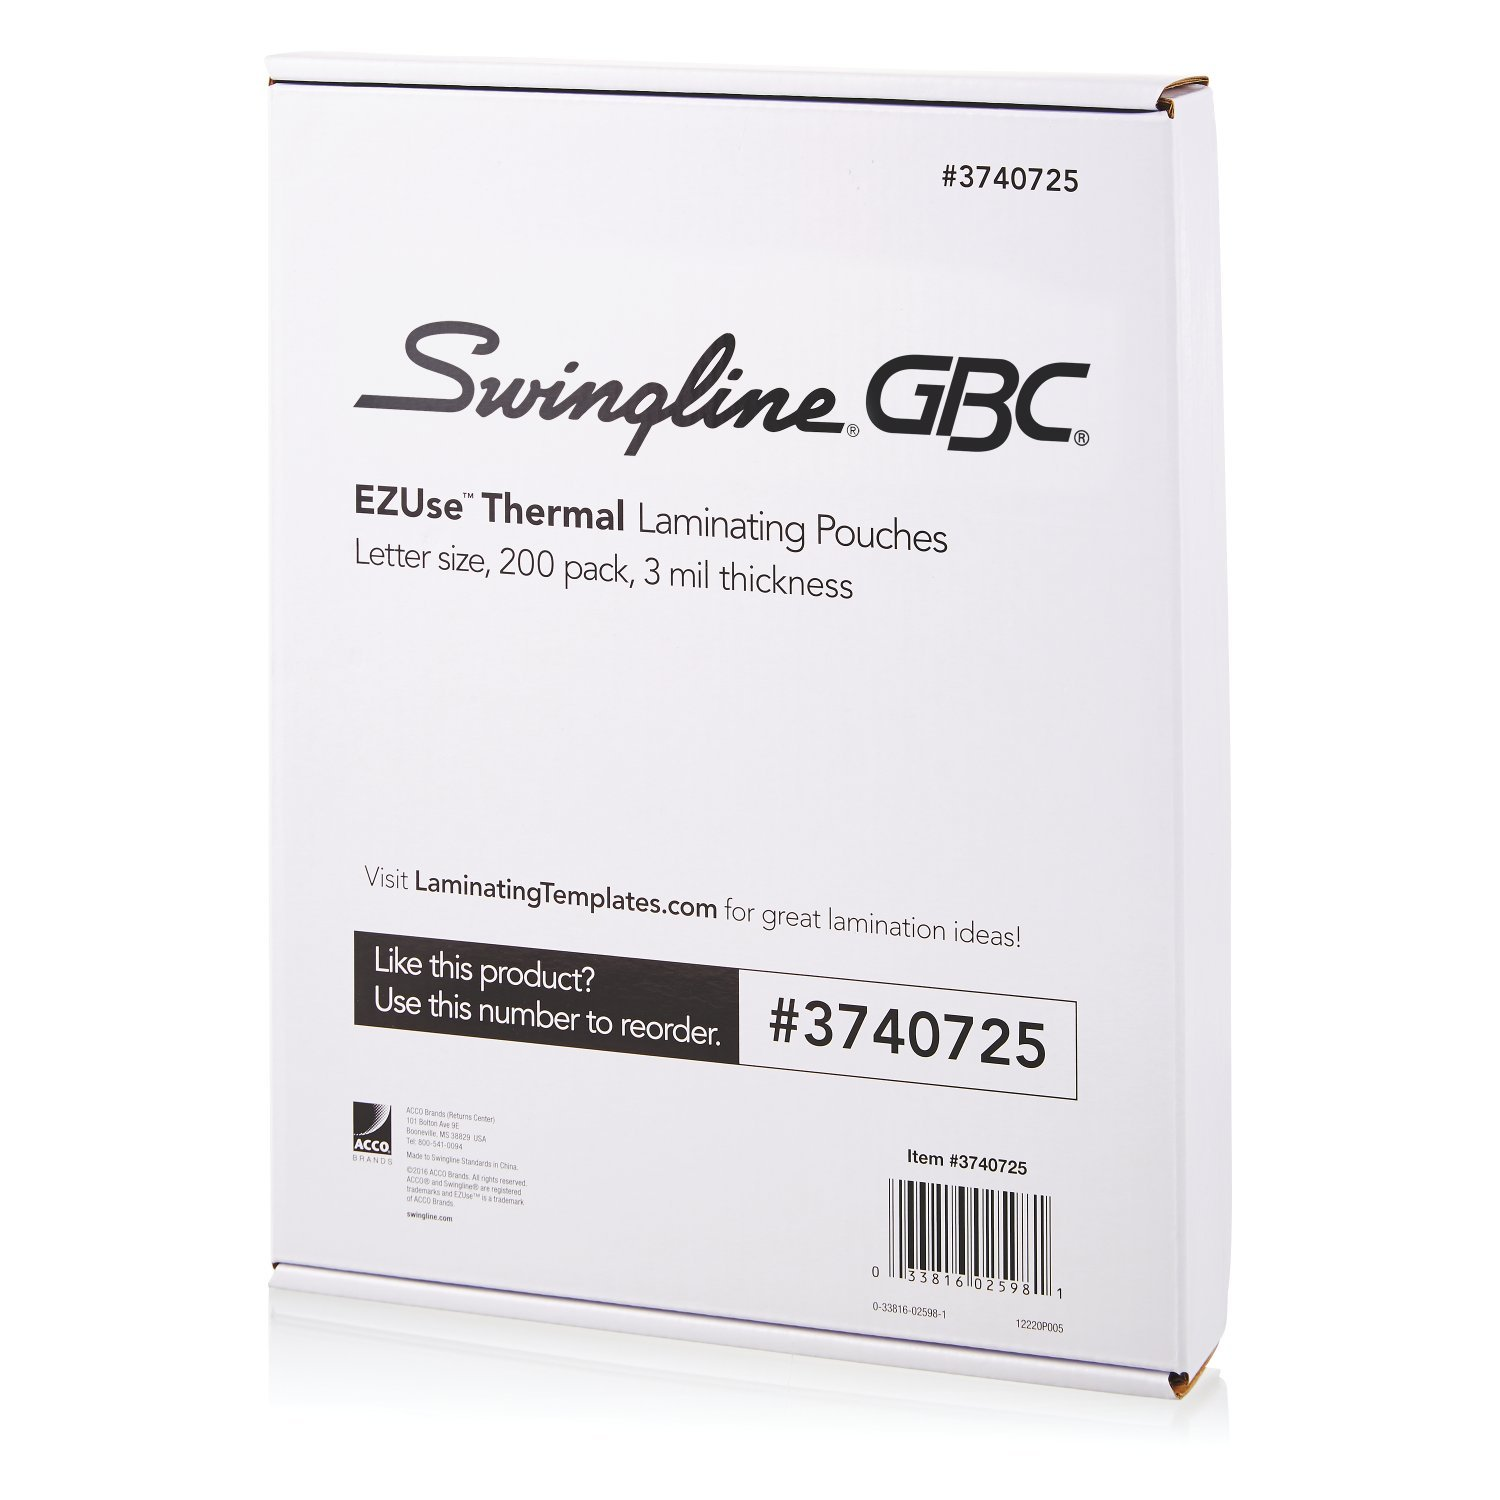 (200-Count, Letter) - Swingline GBC Thermal Laminating Sheets/Pouches, Letter Size, 3 Mil, EZUse, 100-Count (3740725) 200-Count  B06XHJS8WN